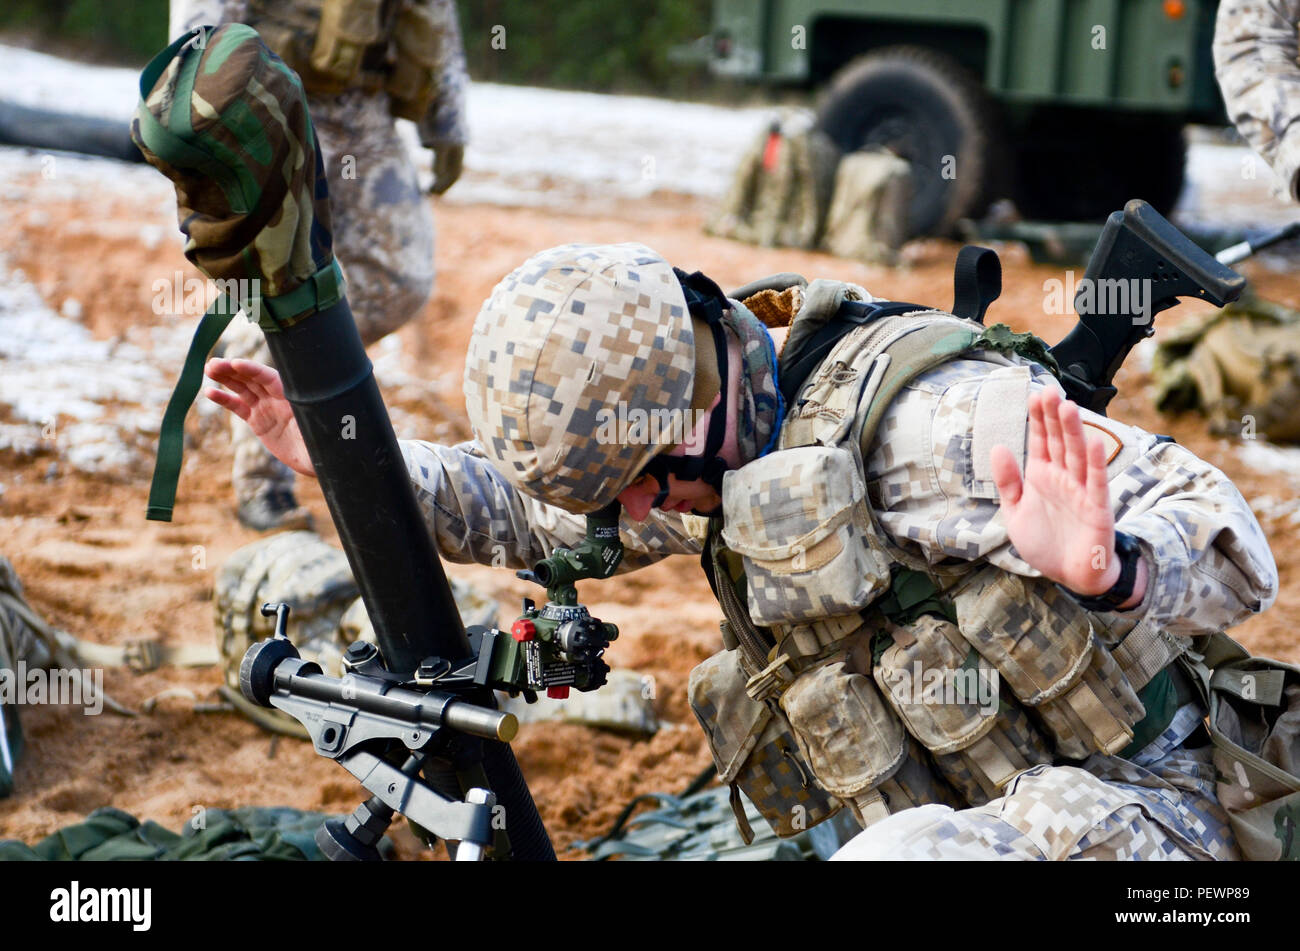 A Latvian soldier with the Latvian Mortar Corps gives hand signals to a fellow soldier in order to align the aiming poles with the sight unit during a field training exercise, which Soldiers of 3rd Squadron, 2nd Cavalry Regiment, stationed out of Vilseck, Germany, participated in at Adazi Training Area in Latvia, Feb. 4, 2016. (Photo by U.S. Army Staff Sgt. Steven M. Colvin/Released) - Stock Image